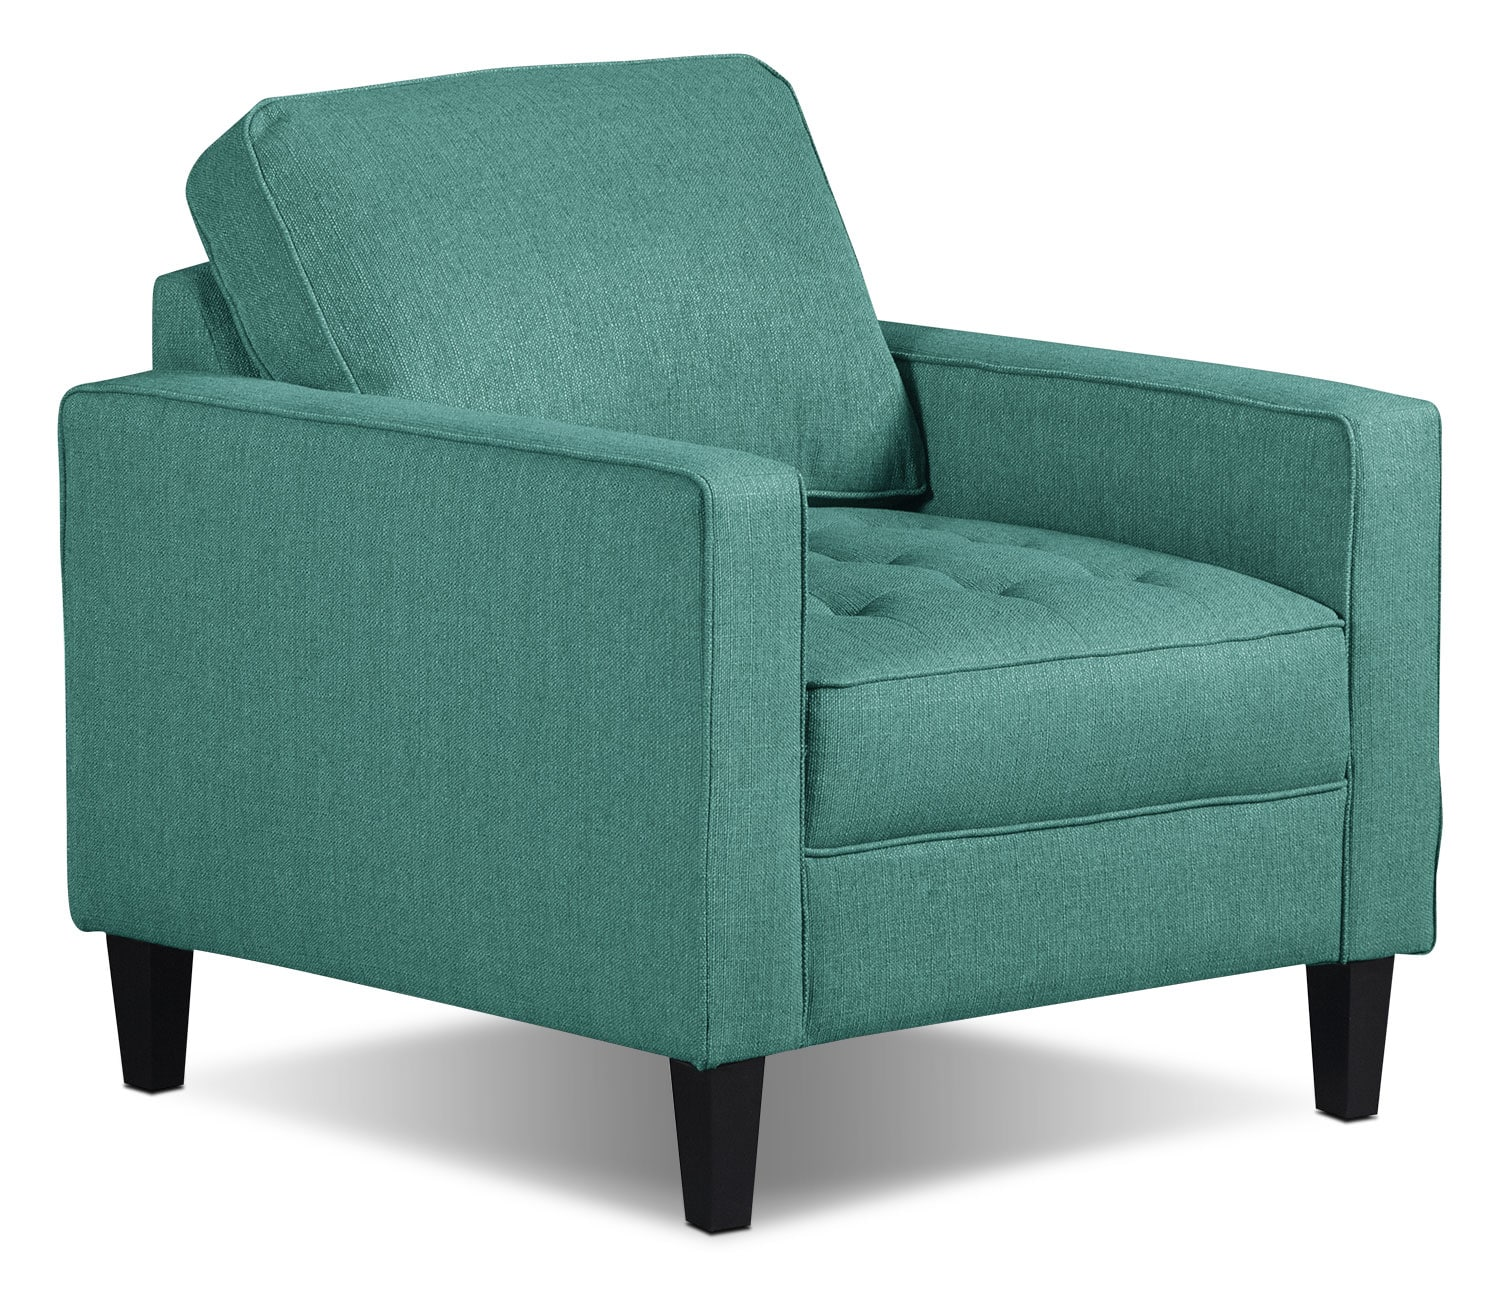 Paris Linen-Look Fabric Chair – Ocean